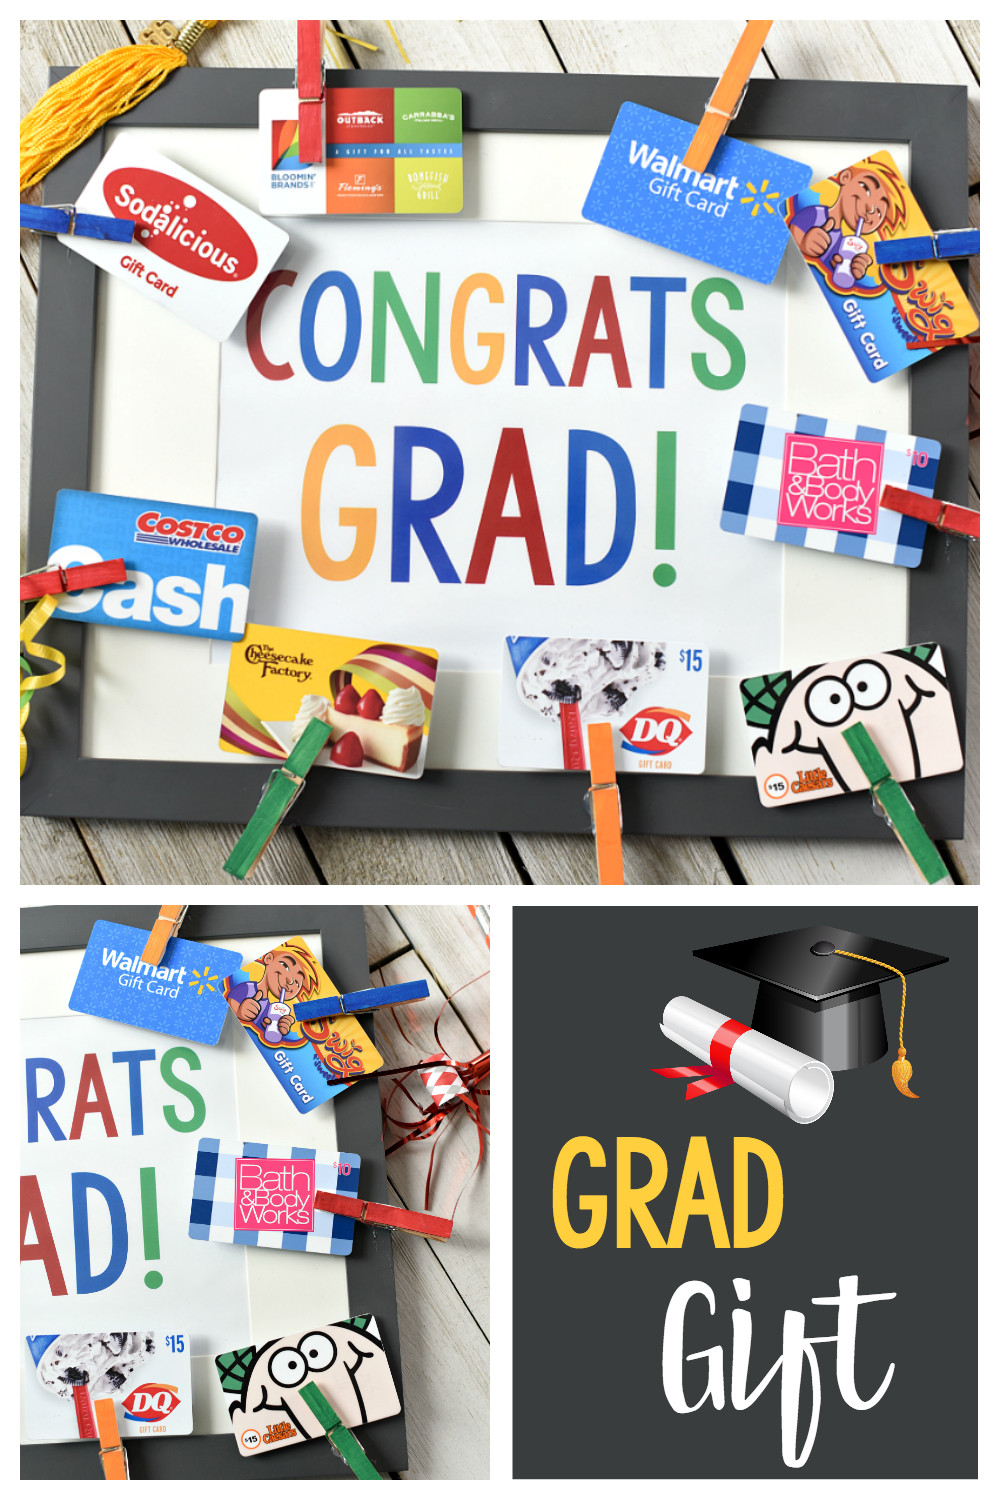 Masters Graduation Gift Ideas For Her  Cute Graduation Gifts Congrats Grad Gift Card Frame – Fun